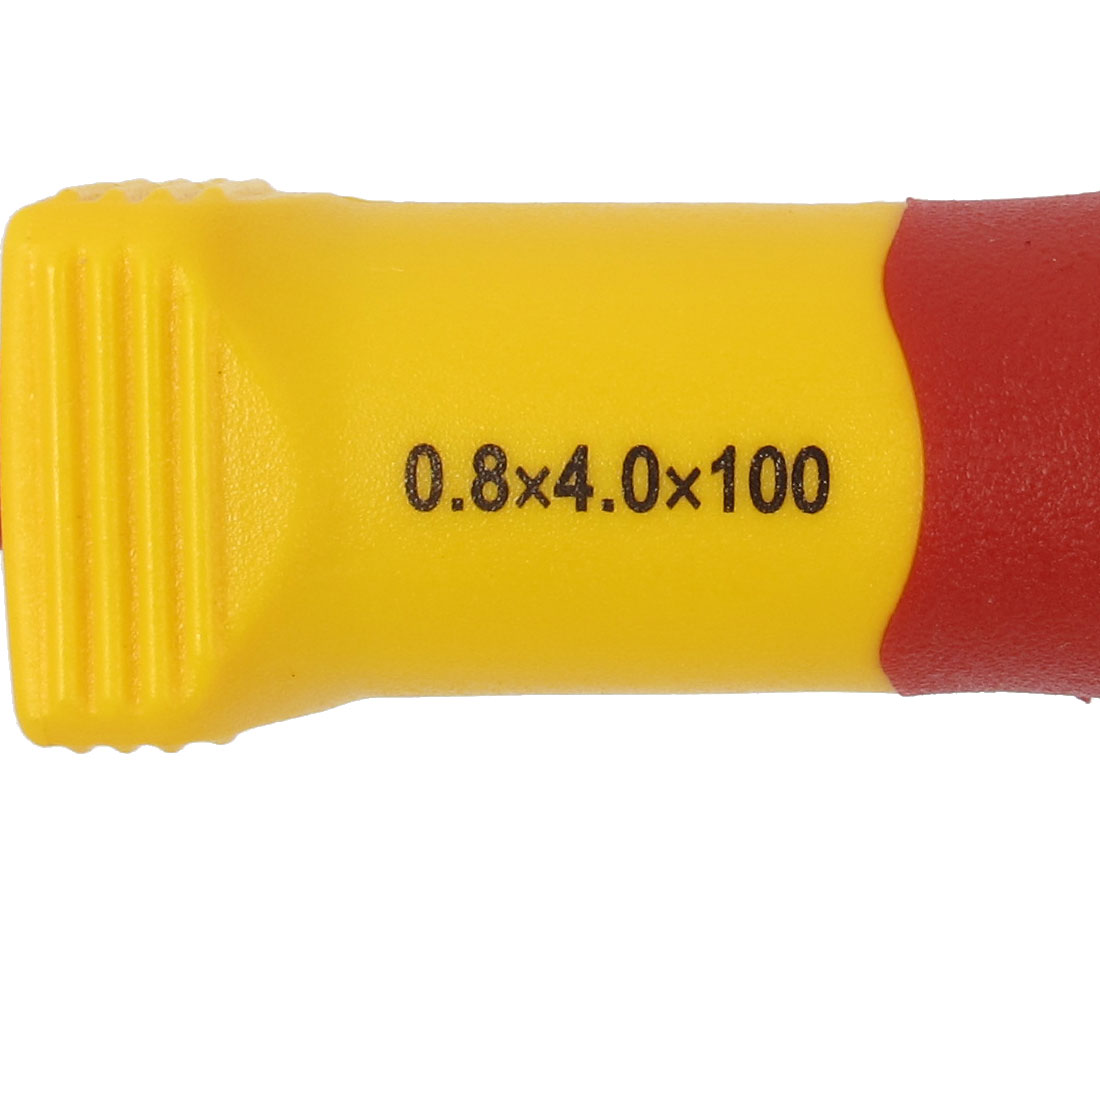 BOOHER Authorized 1000V 4mm Tip Width VDE Insulated Slotted Screwdriver - image 5 of 7